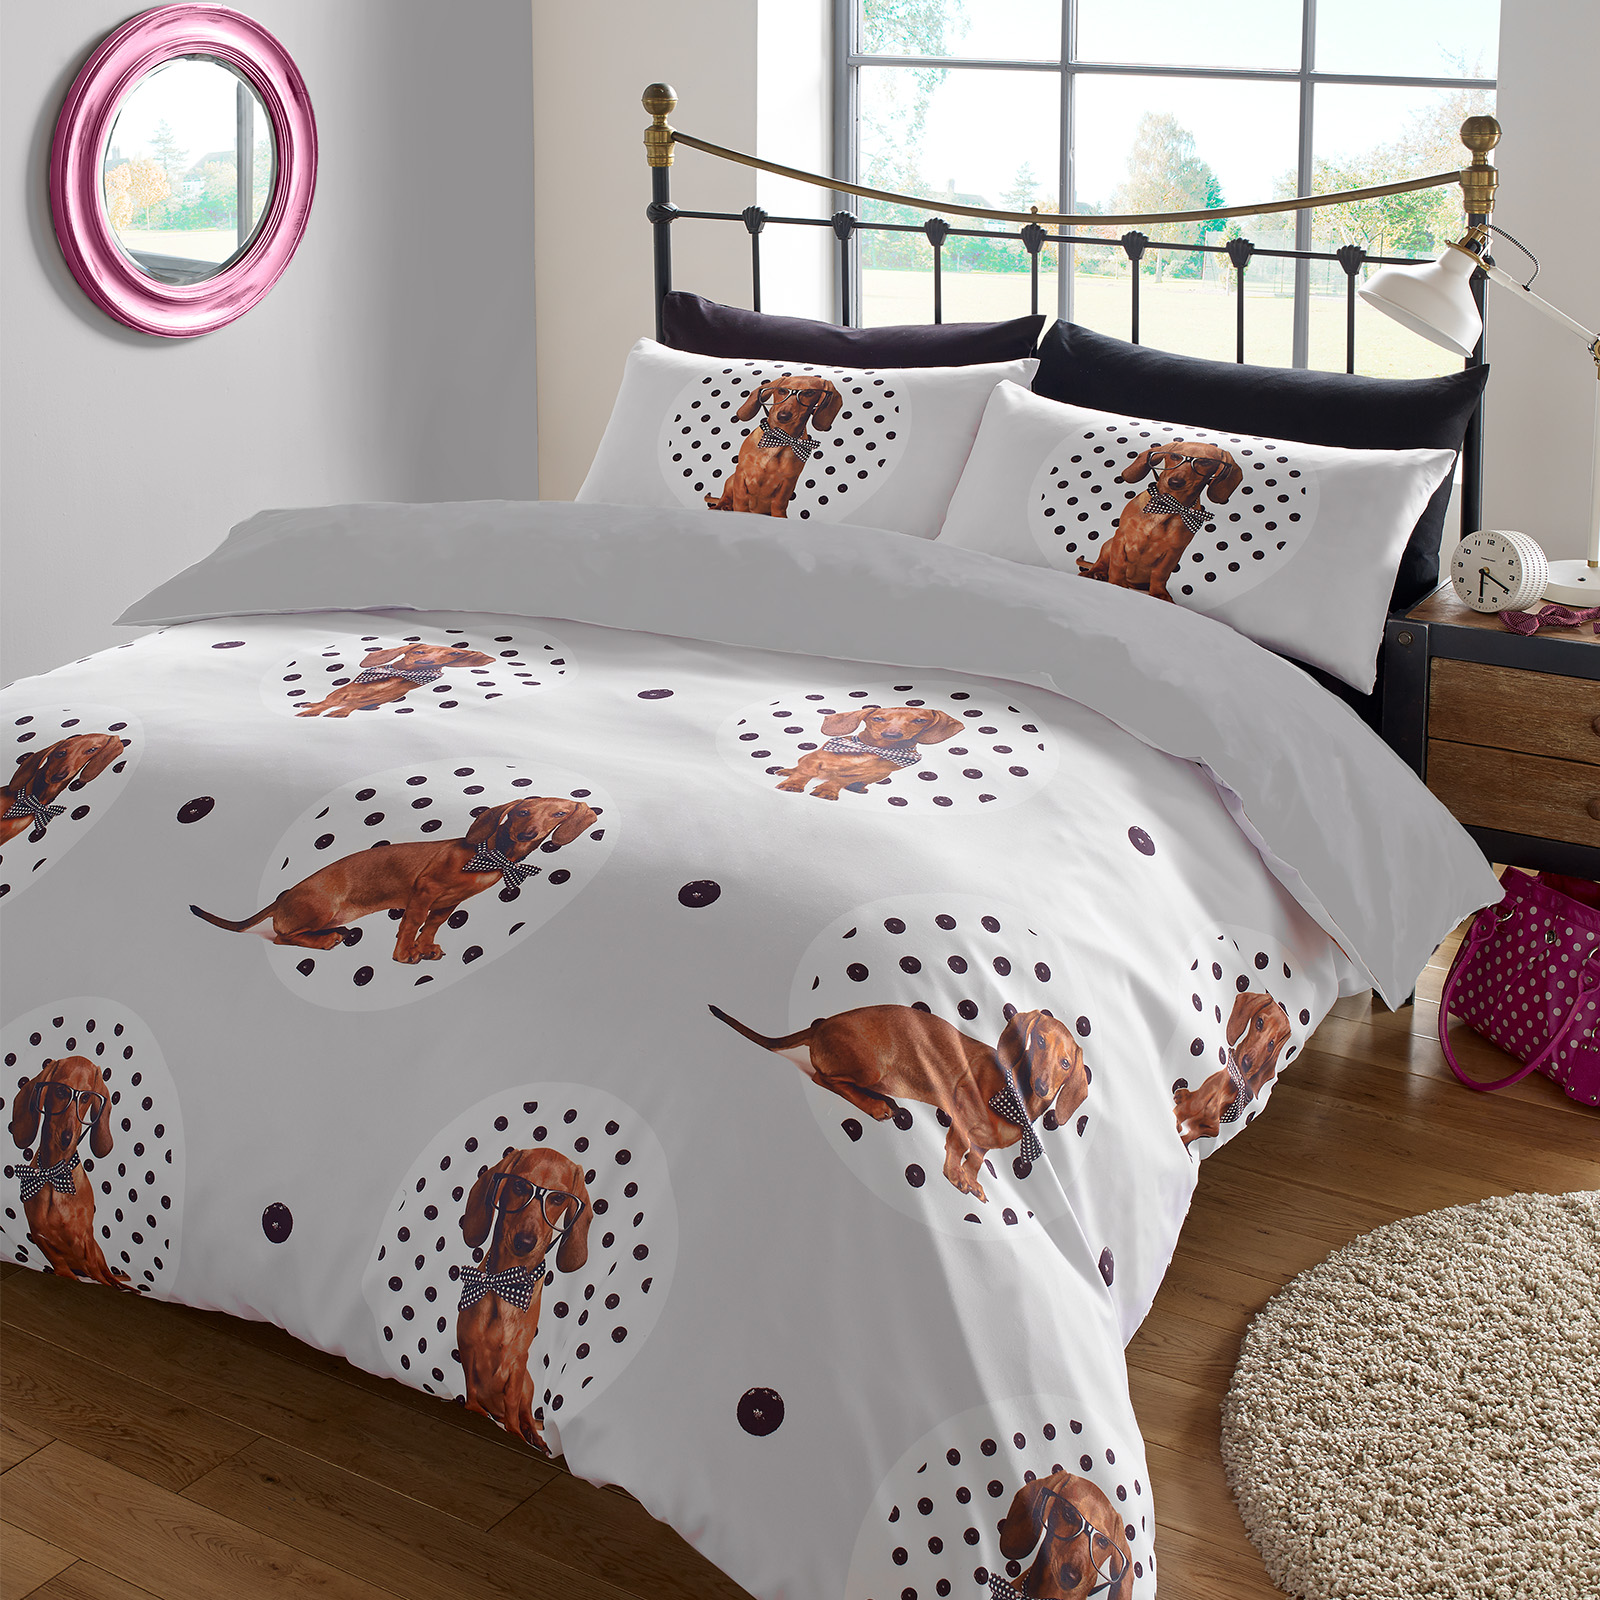 Animal Print Duvet Cover With Pilllowcase Bedding Set